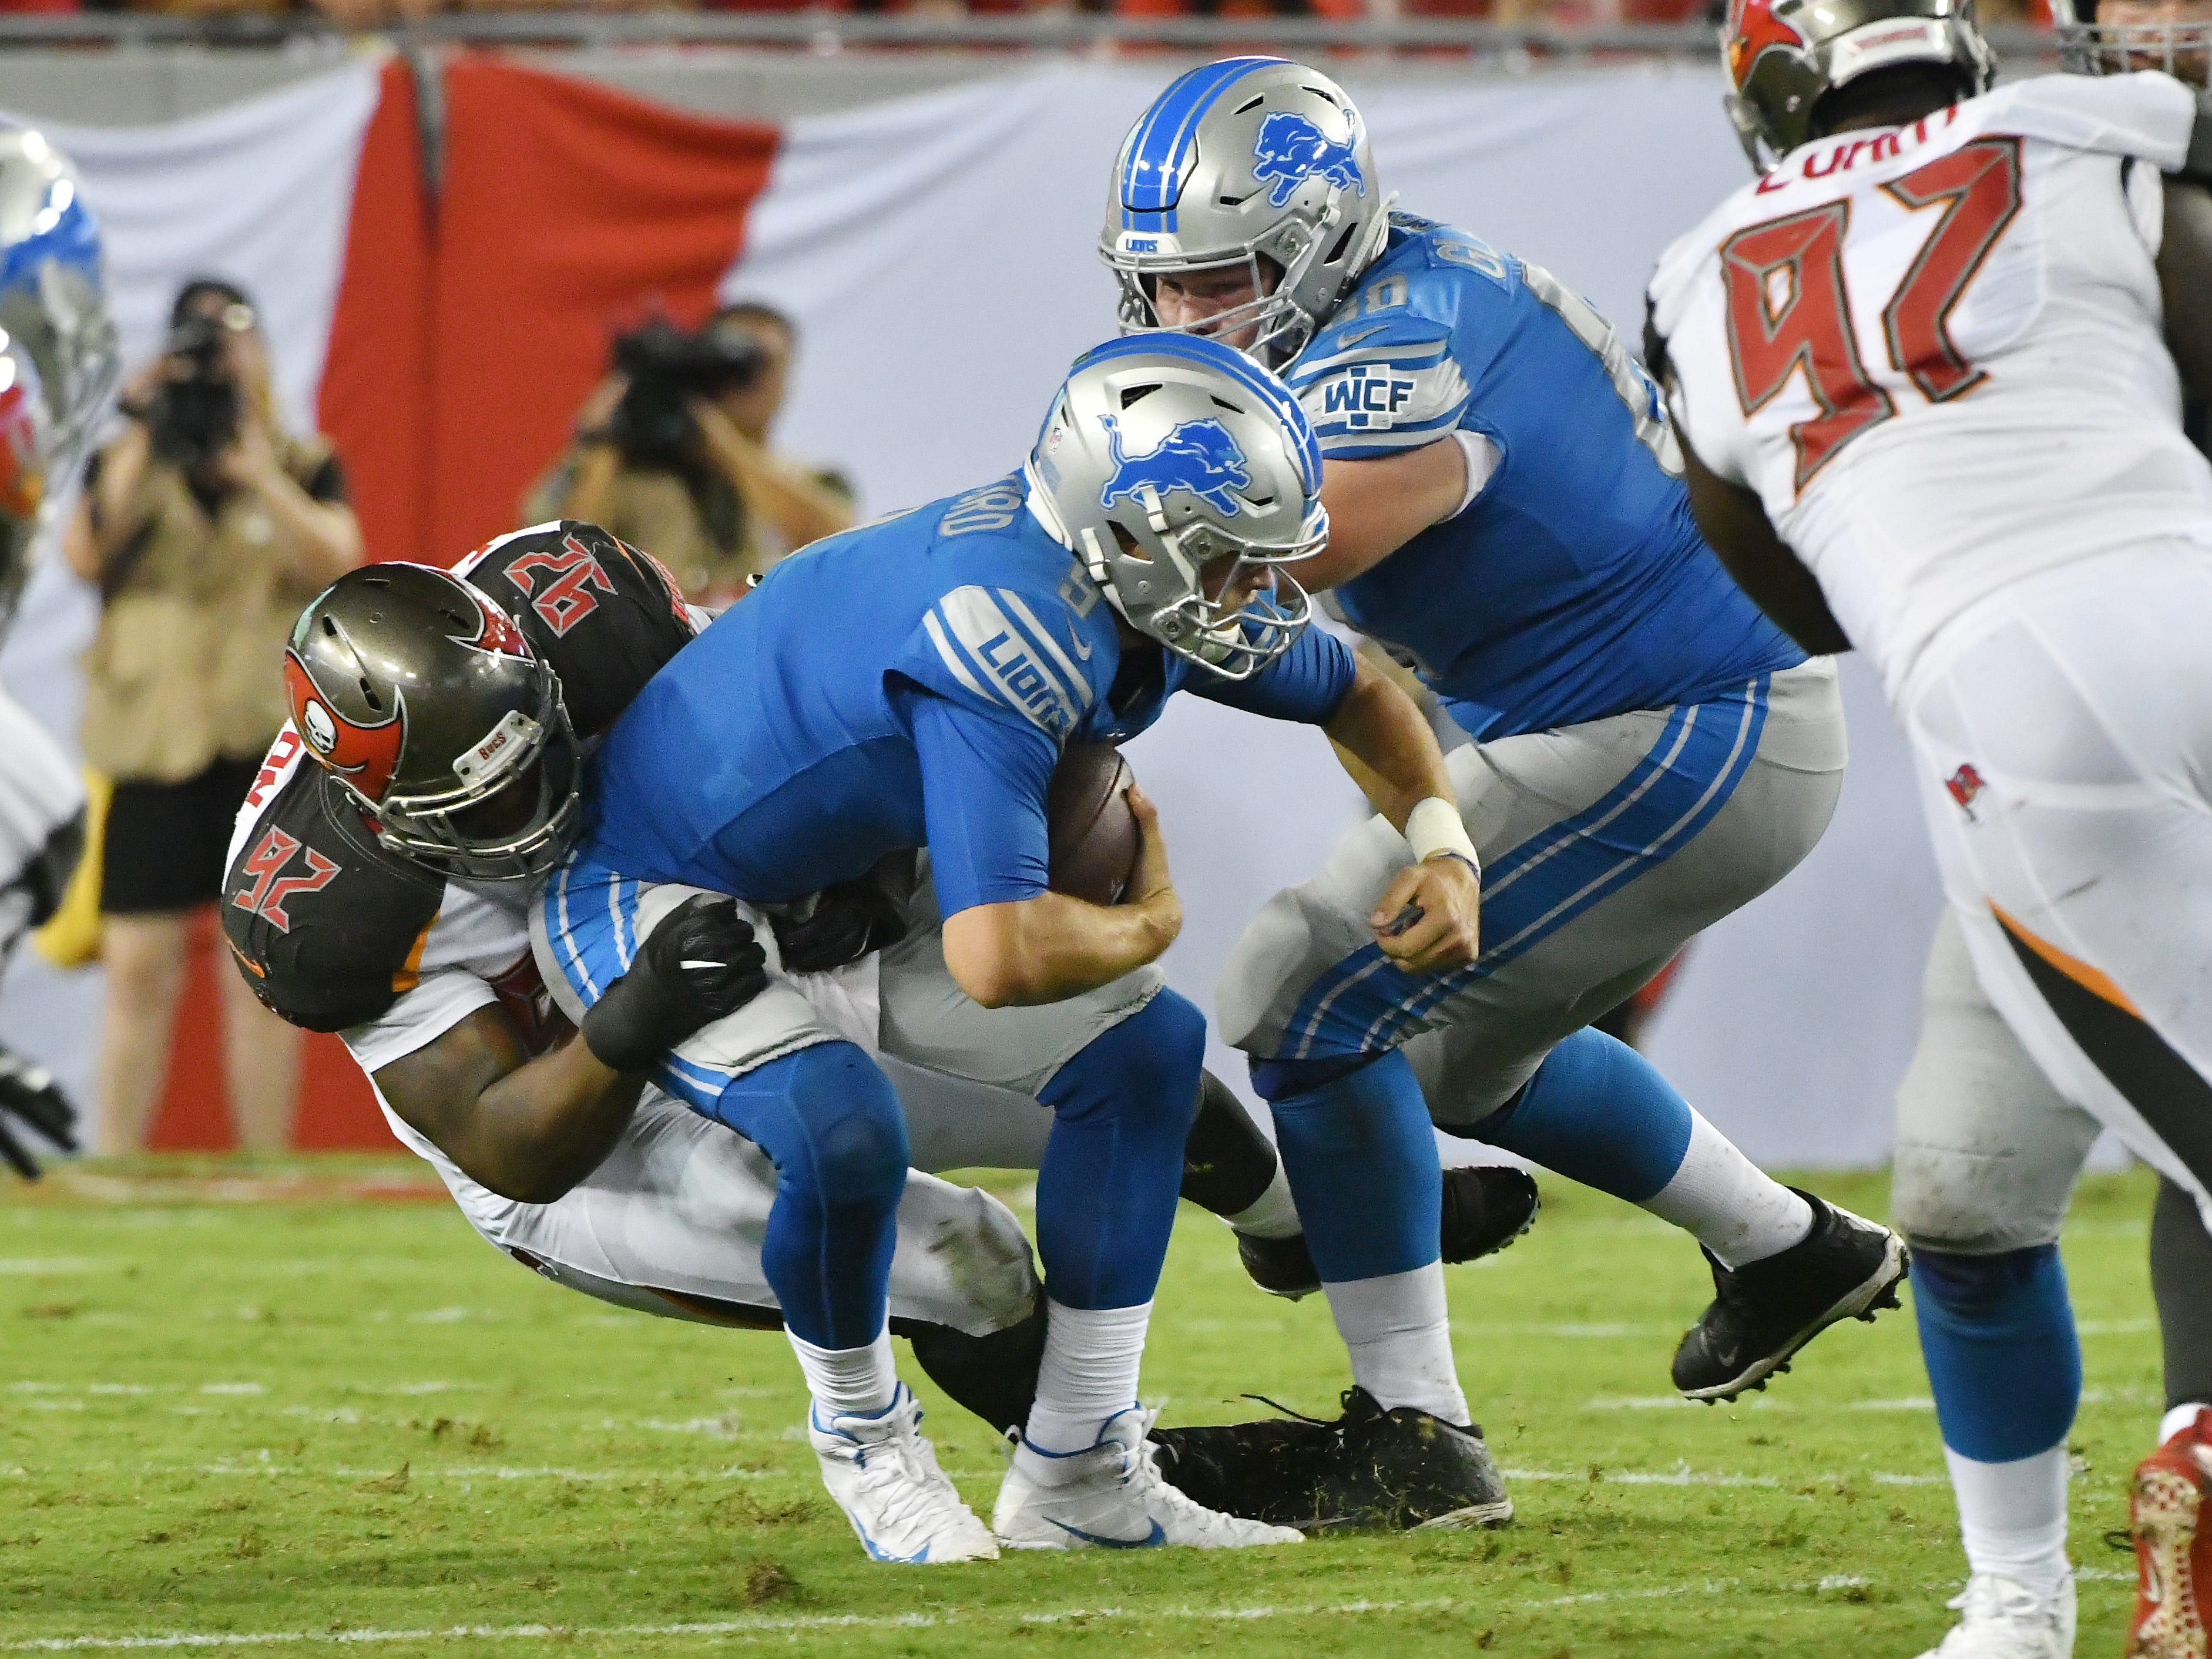 Buccaneers' William Gholstron gets past Lions' Graham Glasgow and sacks Lions quarterback Matthew Stafford in the second quarter.